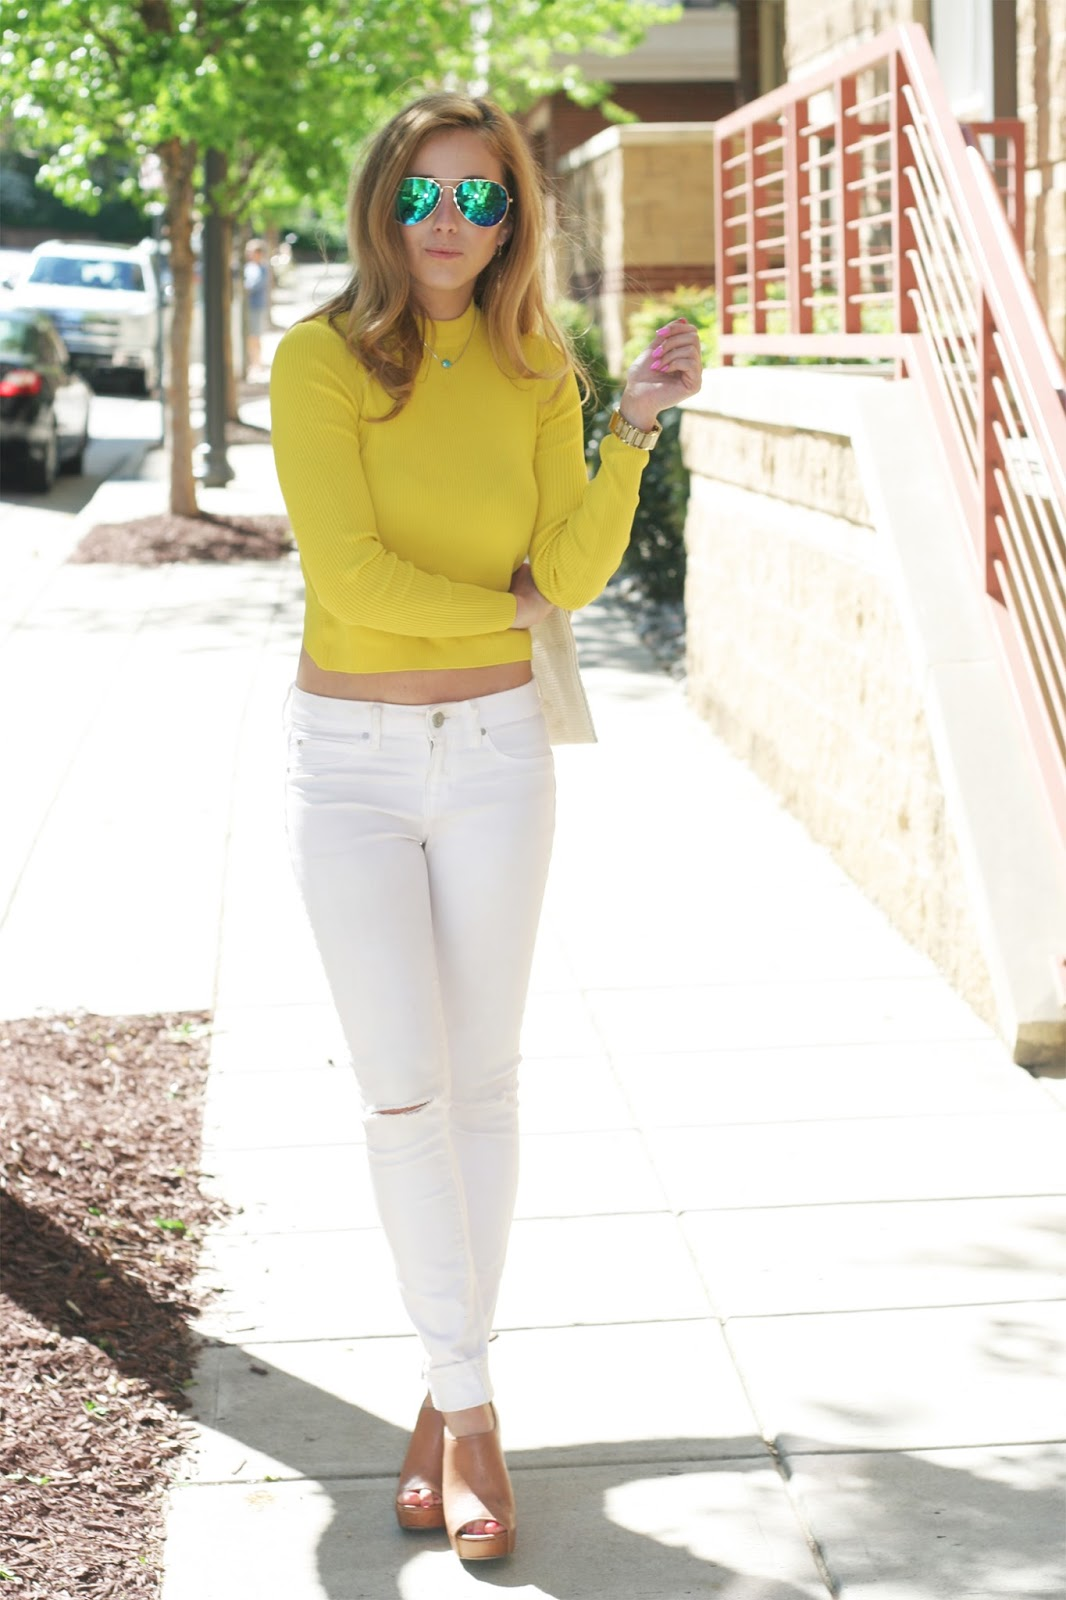 Sara-kate-styling-Steadman-frill-clothing-Raleigh-nc-fashion-blogger-collaboration